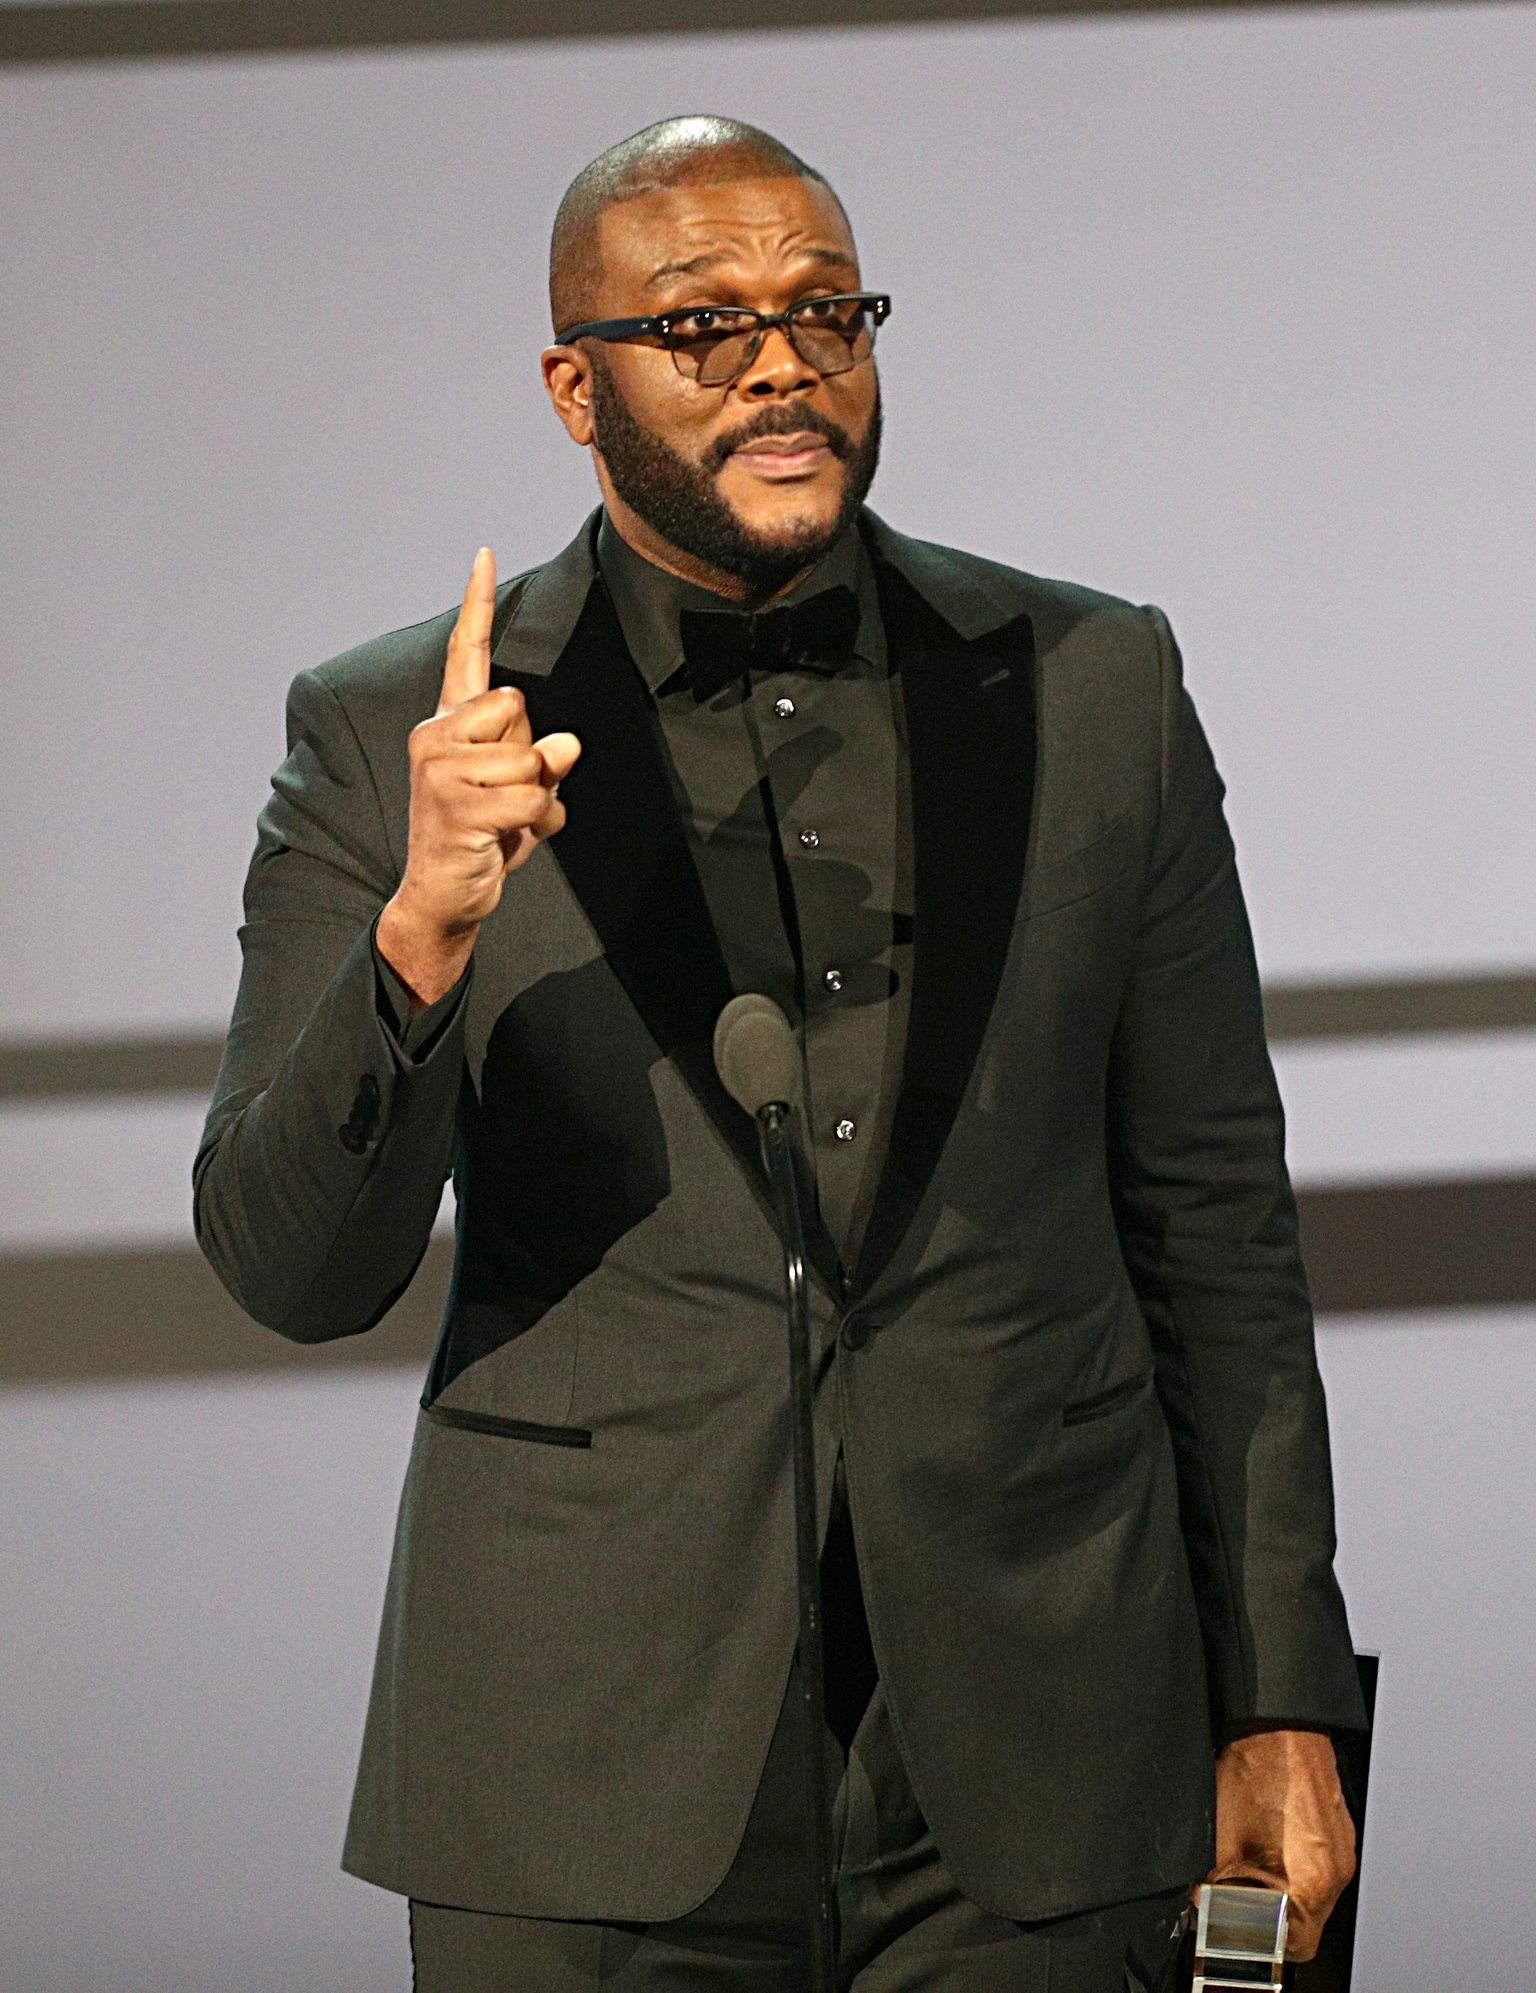 Tyler Perry accepts the Ultimate Icon Award onstage at the BET Awards on June 23, 2019 in Los Angeles, California | Photo: Getty Images